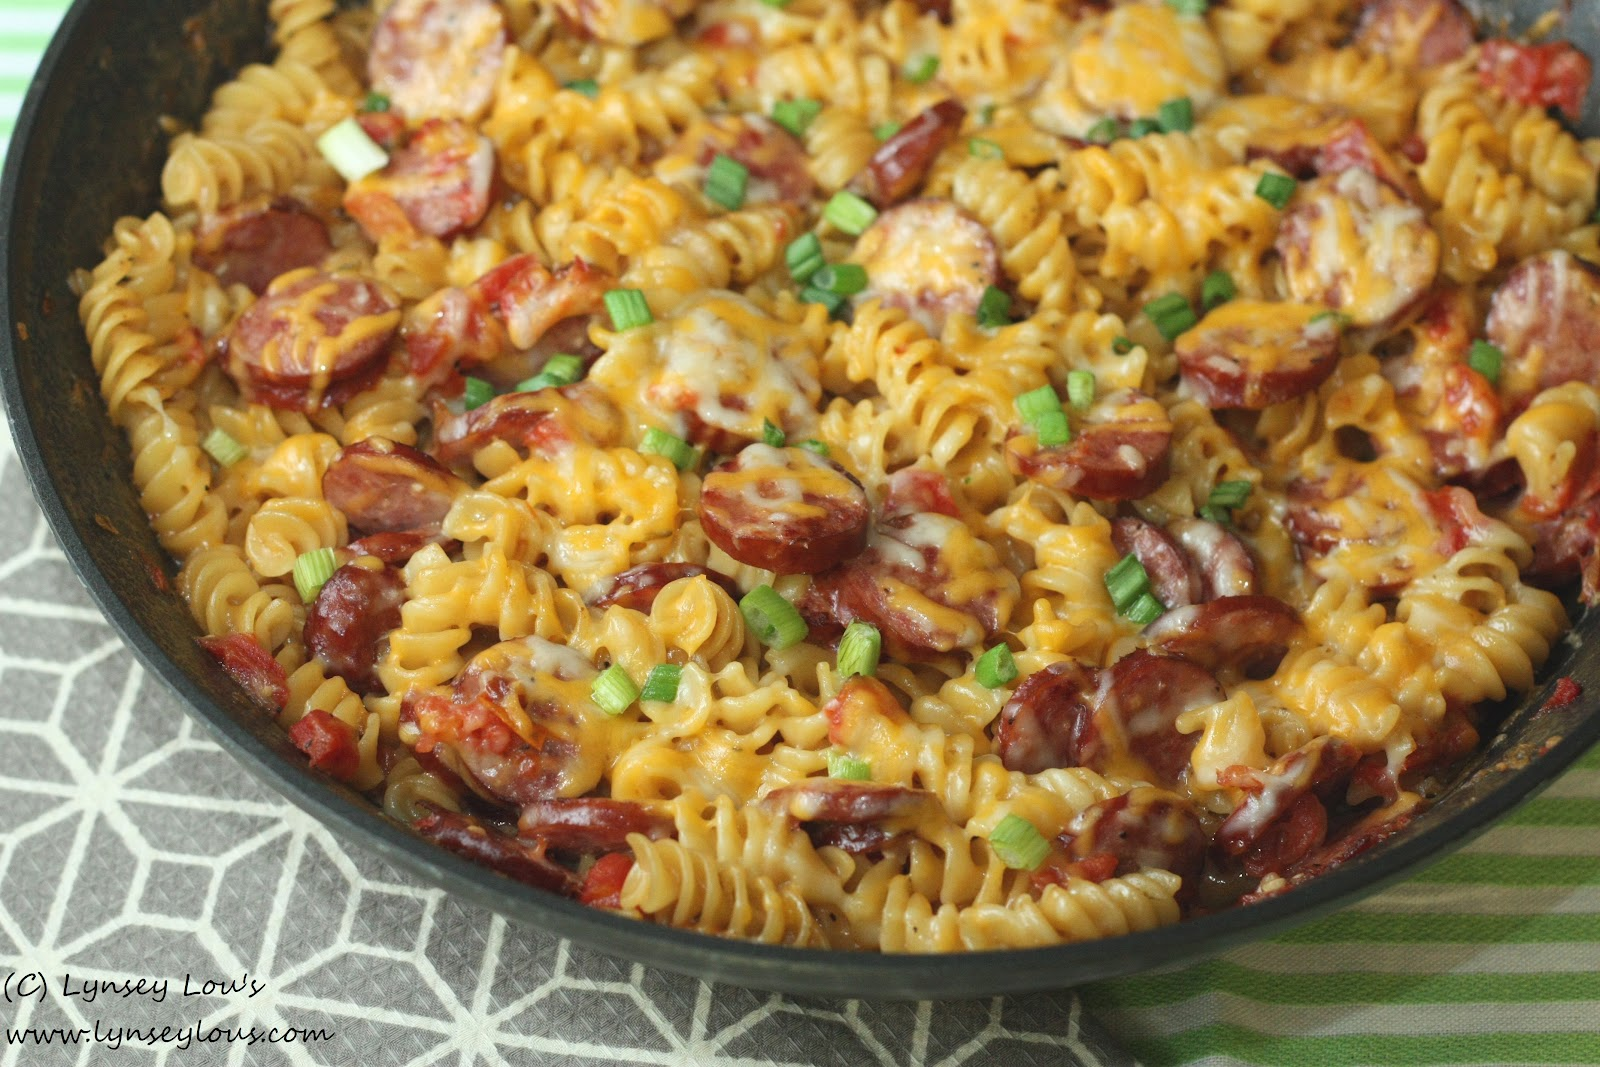 Lynsey Lou's: Spicy Sausage Casserole